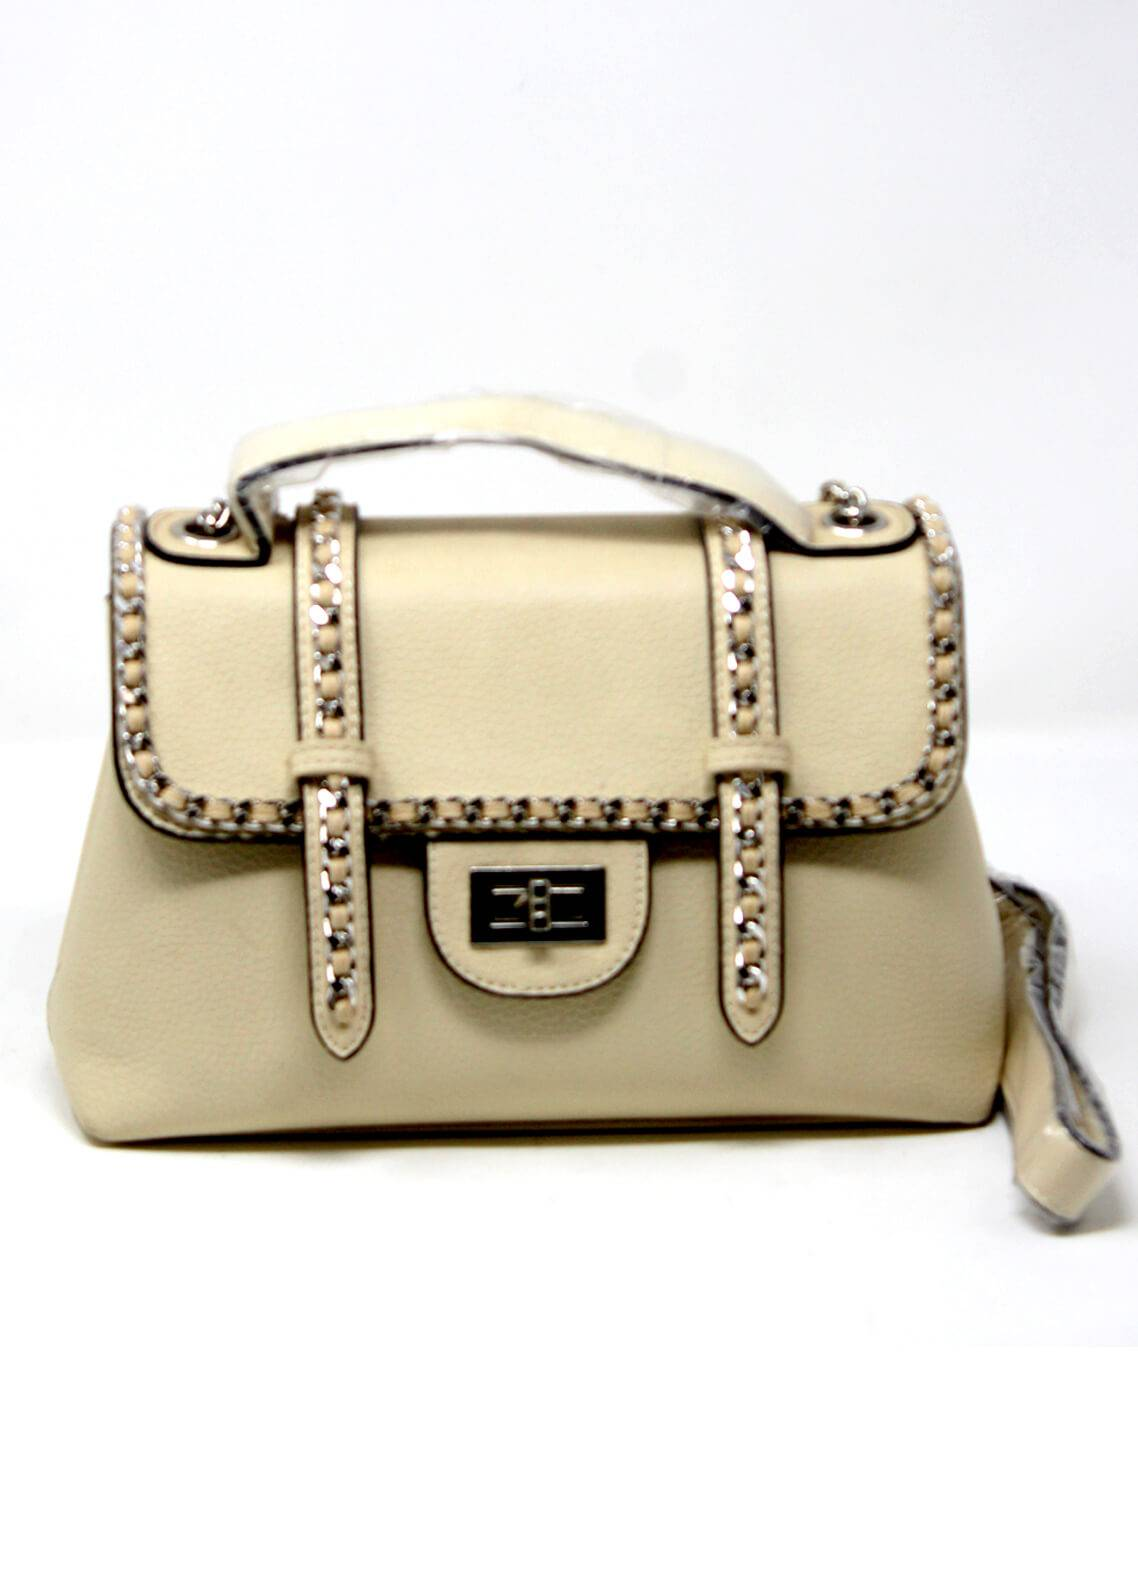 Susen PU Leather Satchels Bag for Women - Cream with Plain Texture